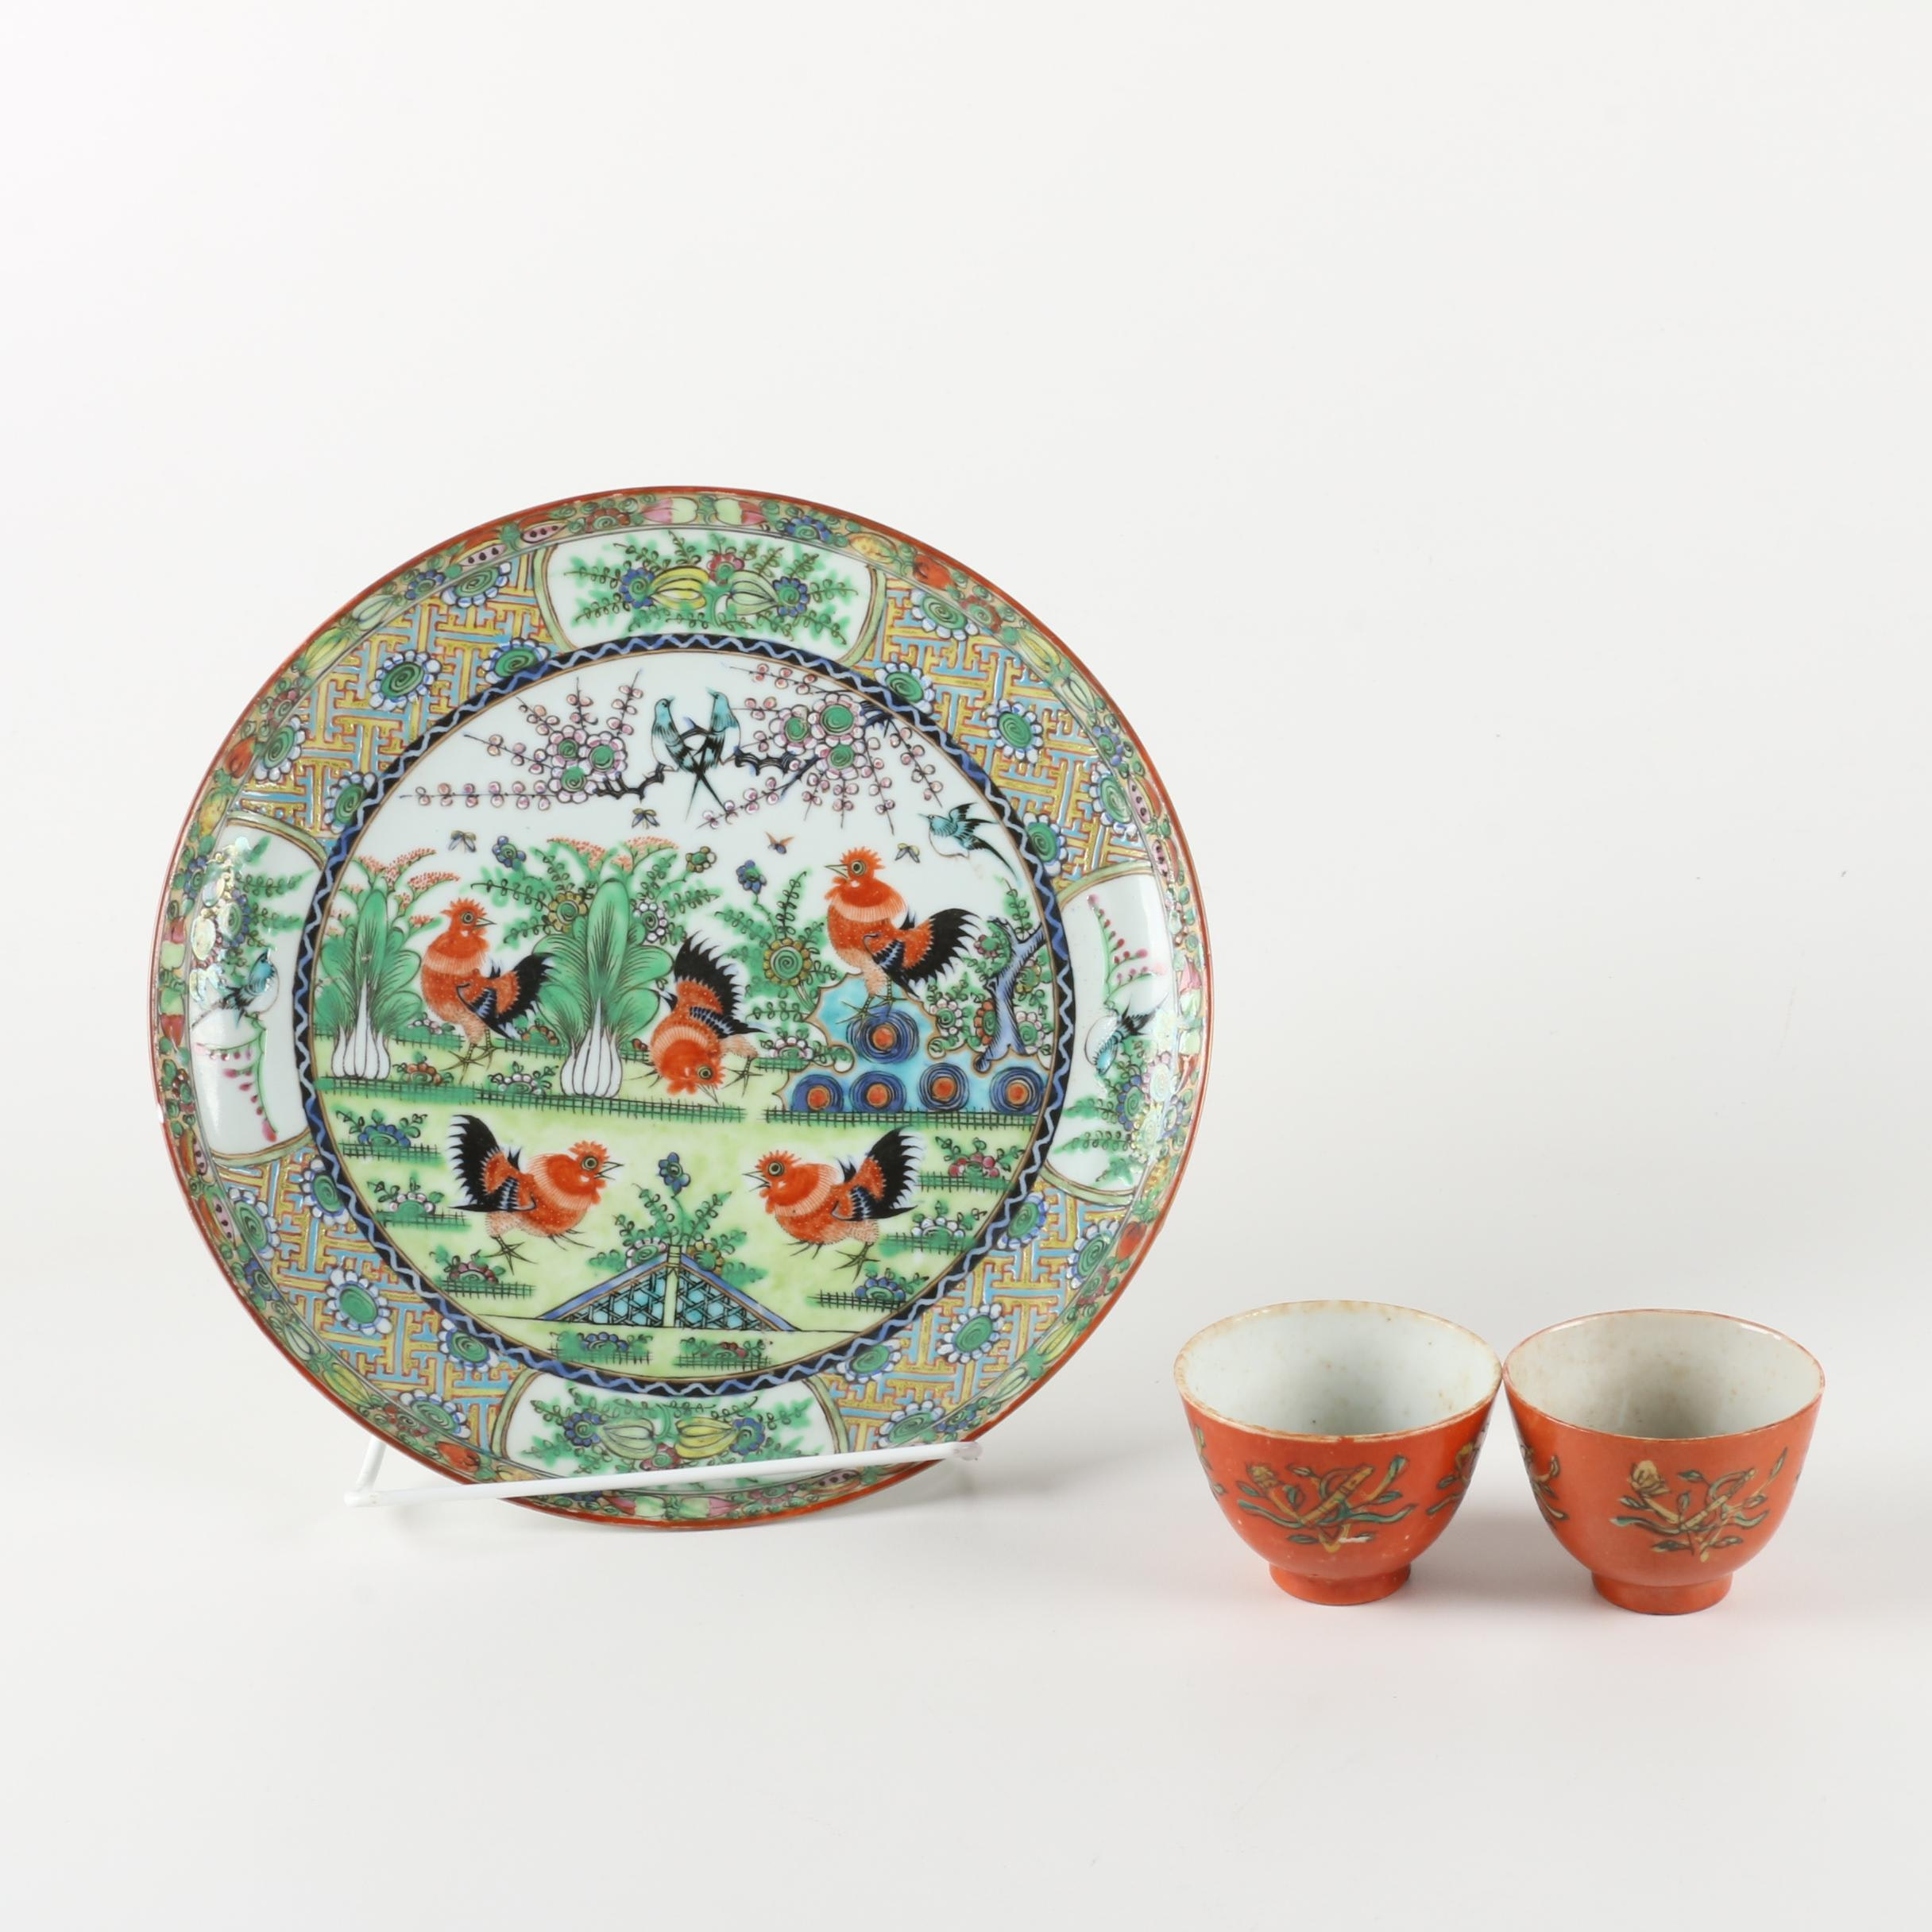 Chinese Imari Style Plate and Tea Bowls